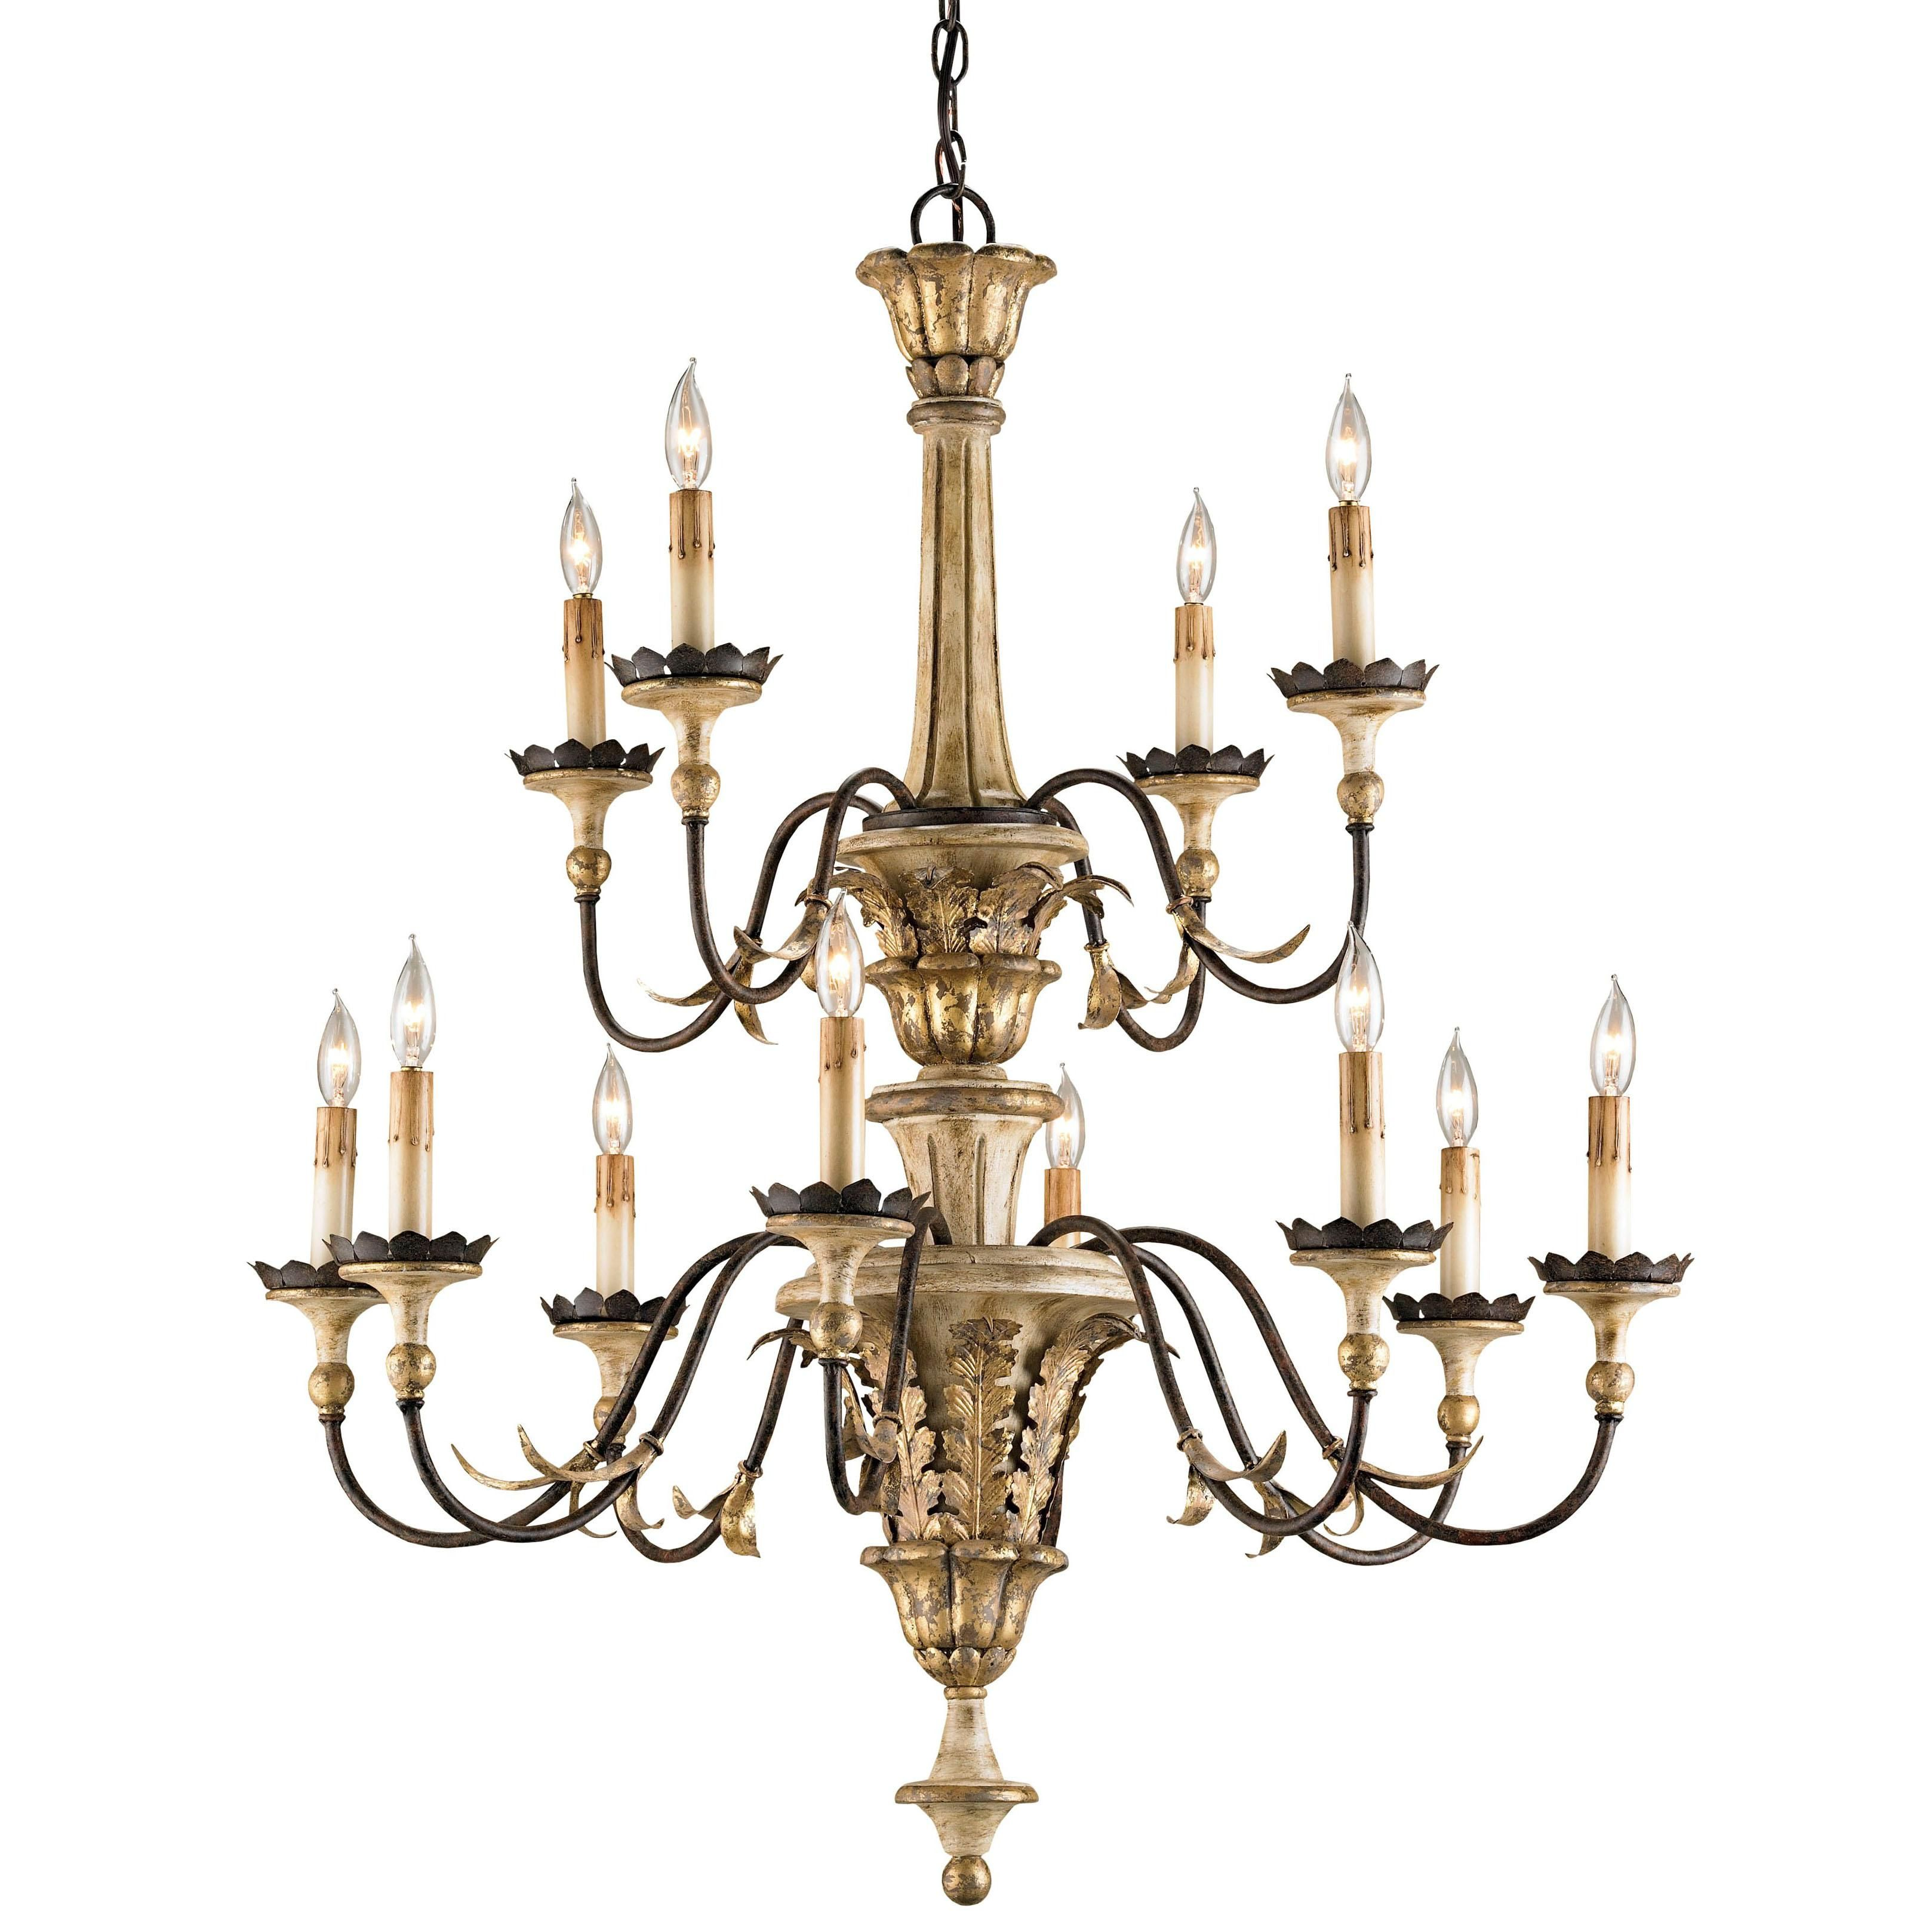 New entry chandelier. Ordered yesterday!